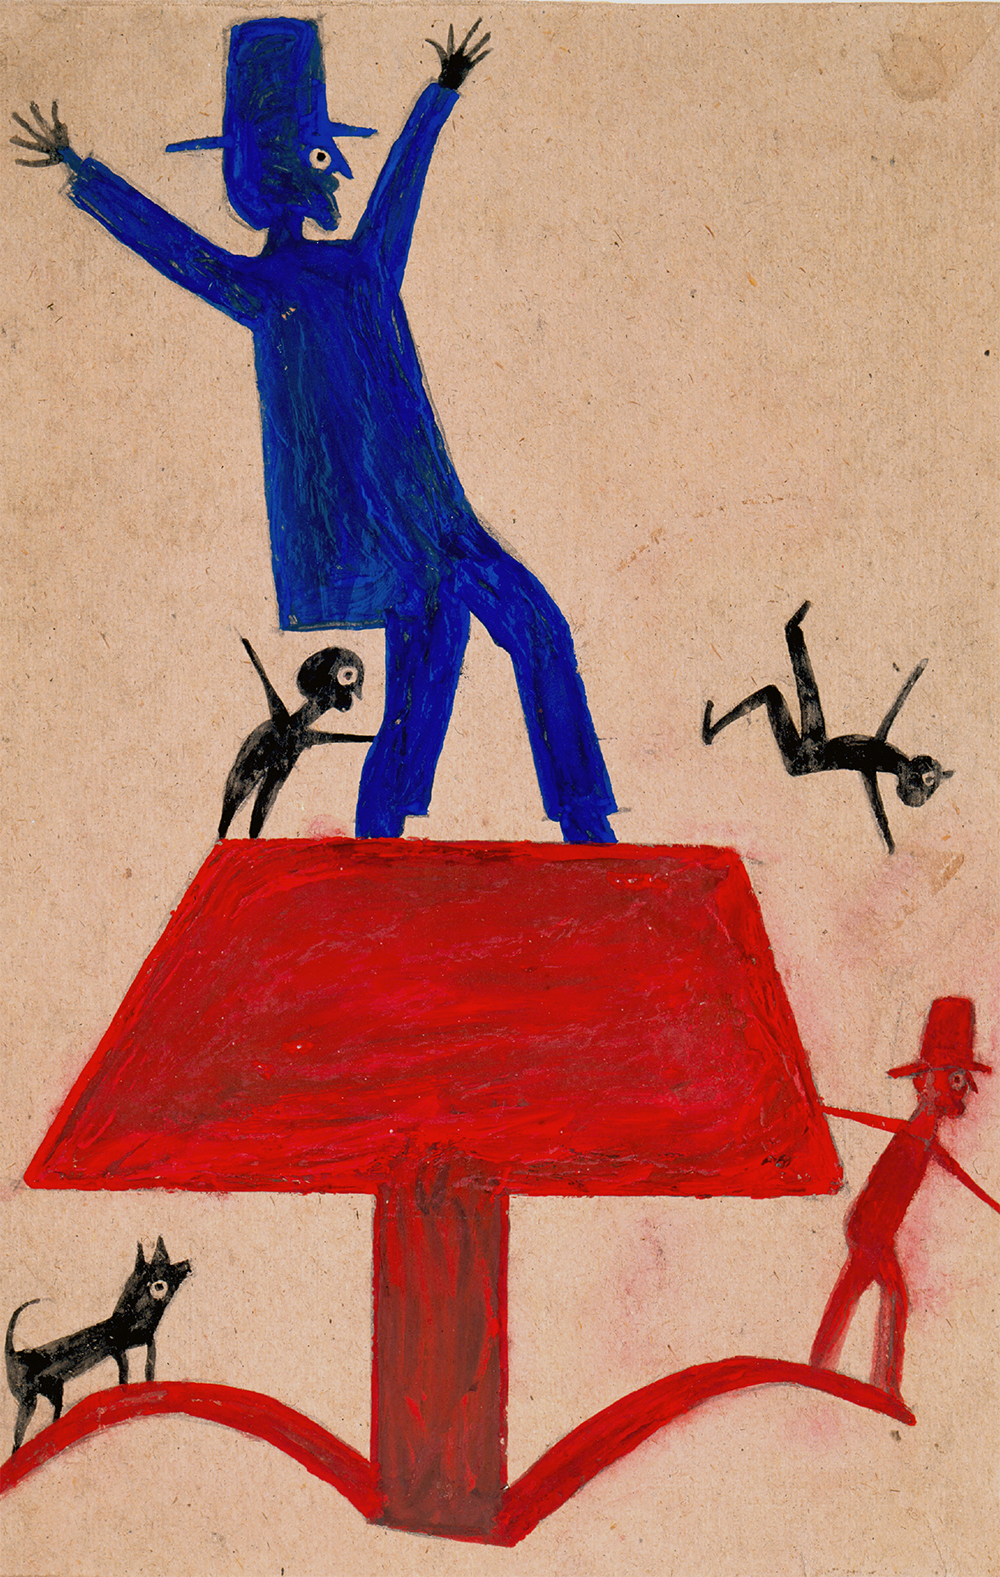 Untitled (Blue Man on Red Object), by Bill Traylor, c. 1939. High Museum of Art, Atlanta, purchase with funds from Mrs. Lindsey Hopkins, Jr., Edith G. and Philip A. Rhodes, and the Members Guild. Photograph by Mike Jensen.